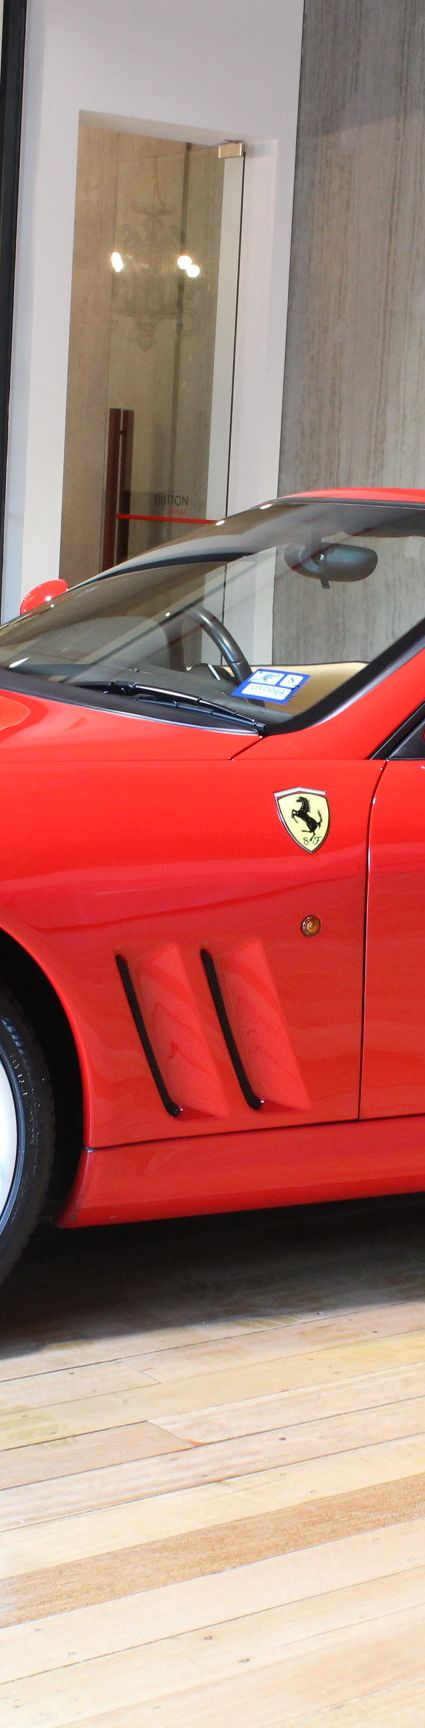 2002 Ferrari SuperAmerica - for sale in Australia